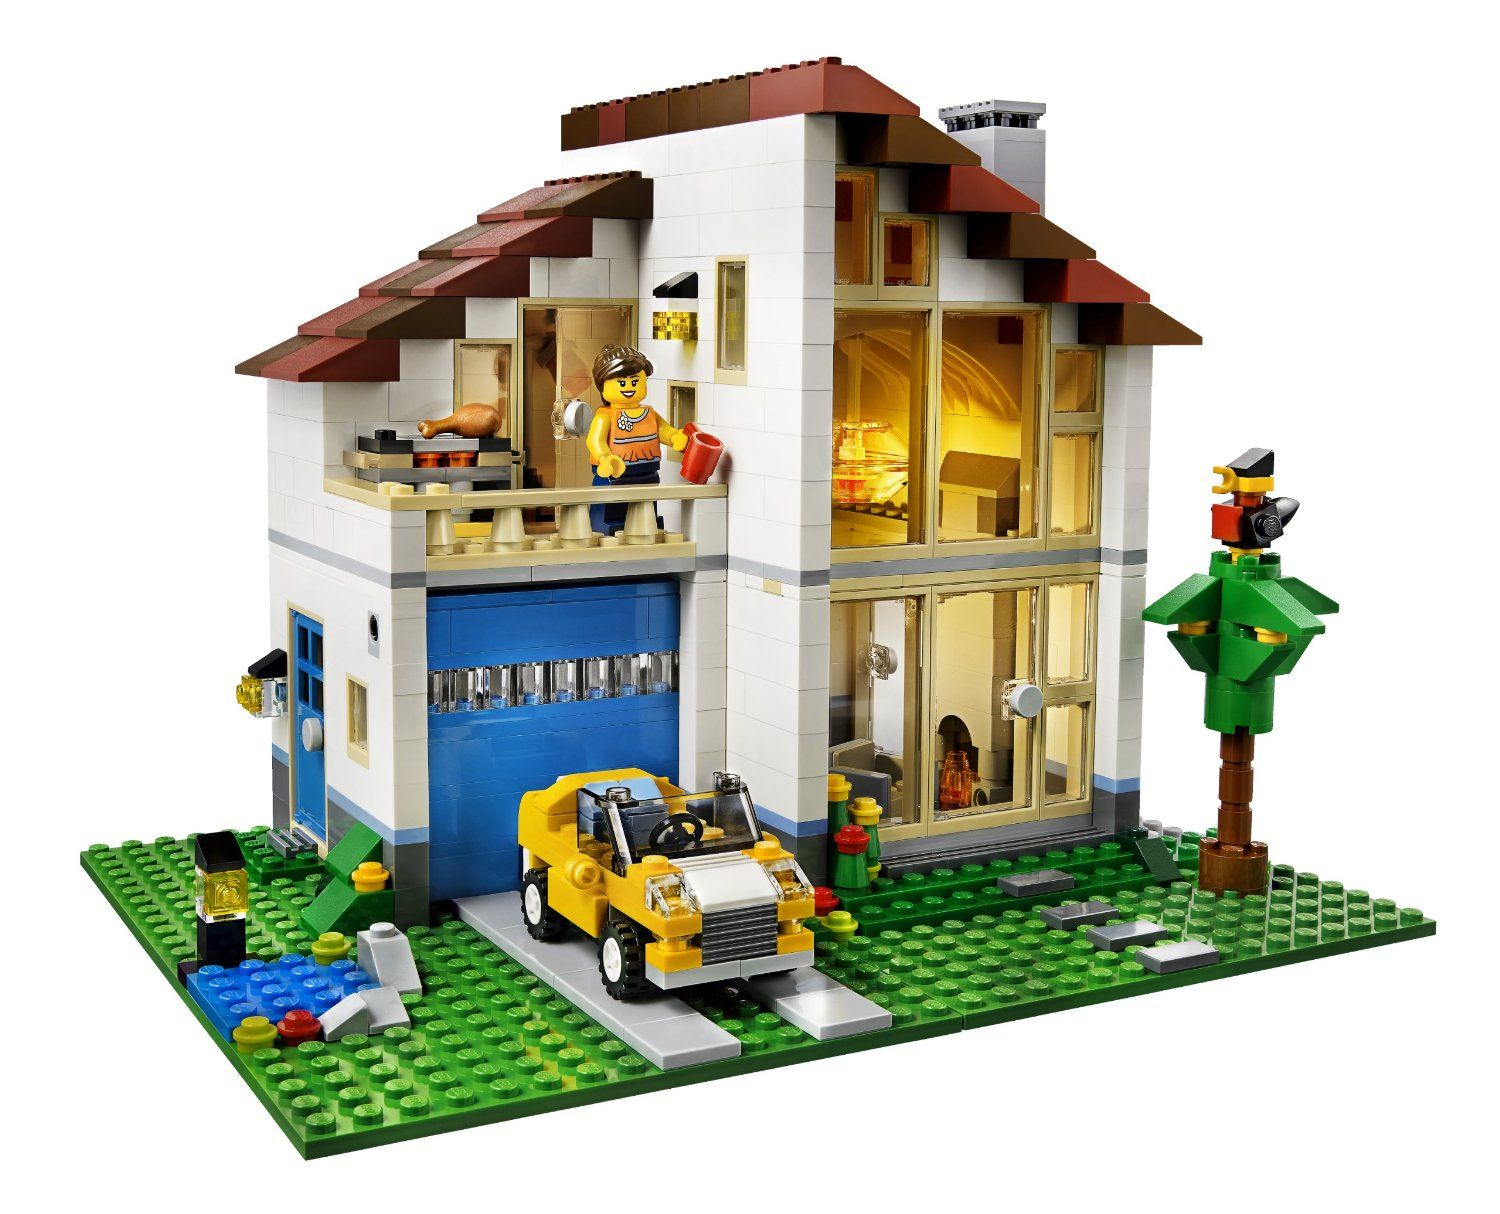 Lego Creator 3 In 1 Home Playsets Are Awesome 레고